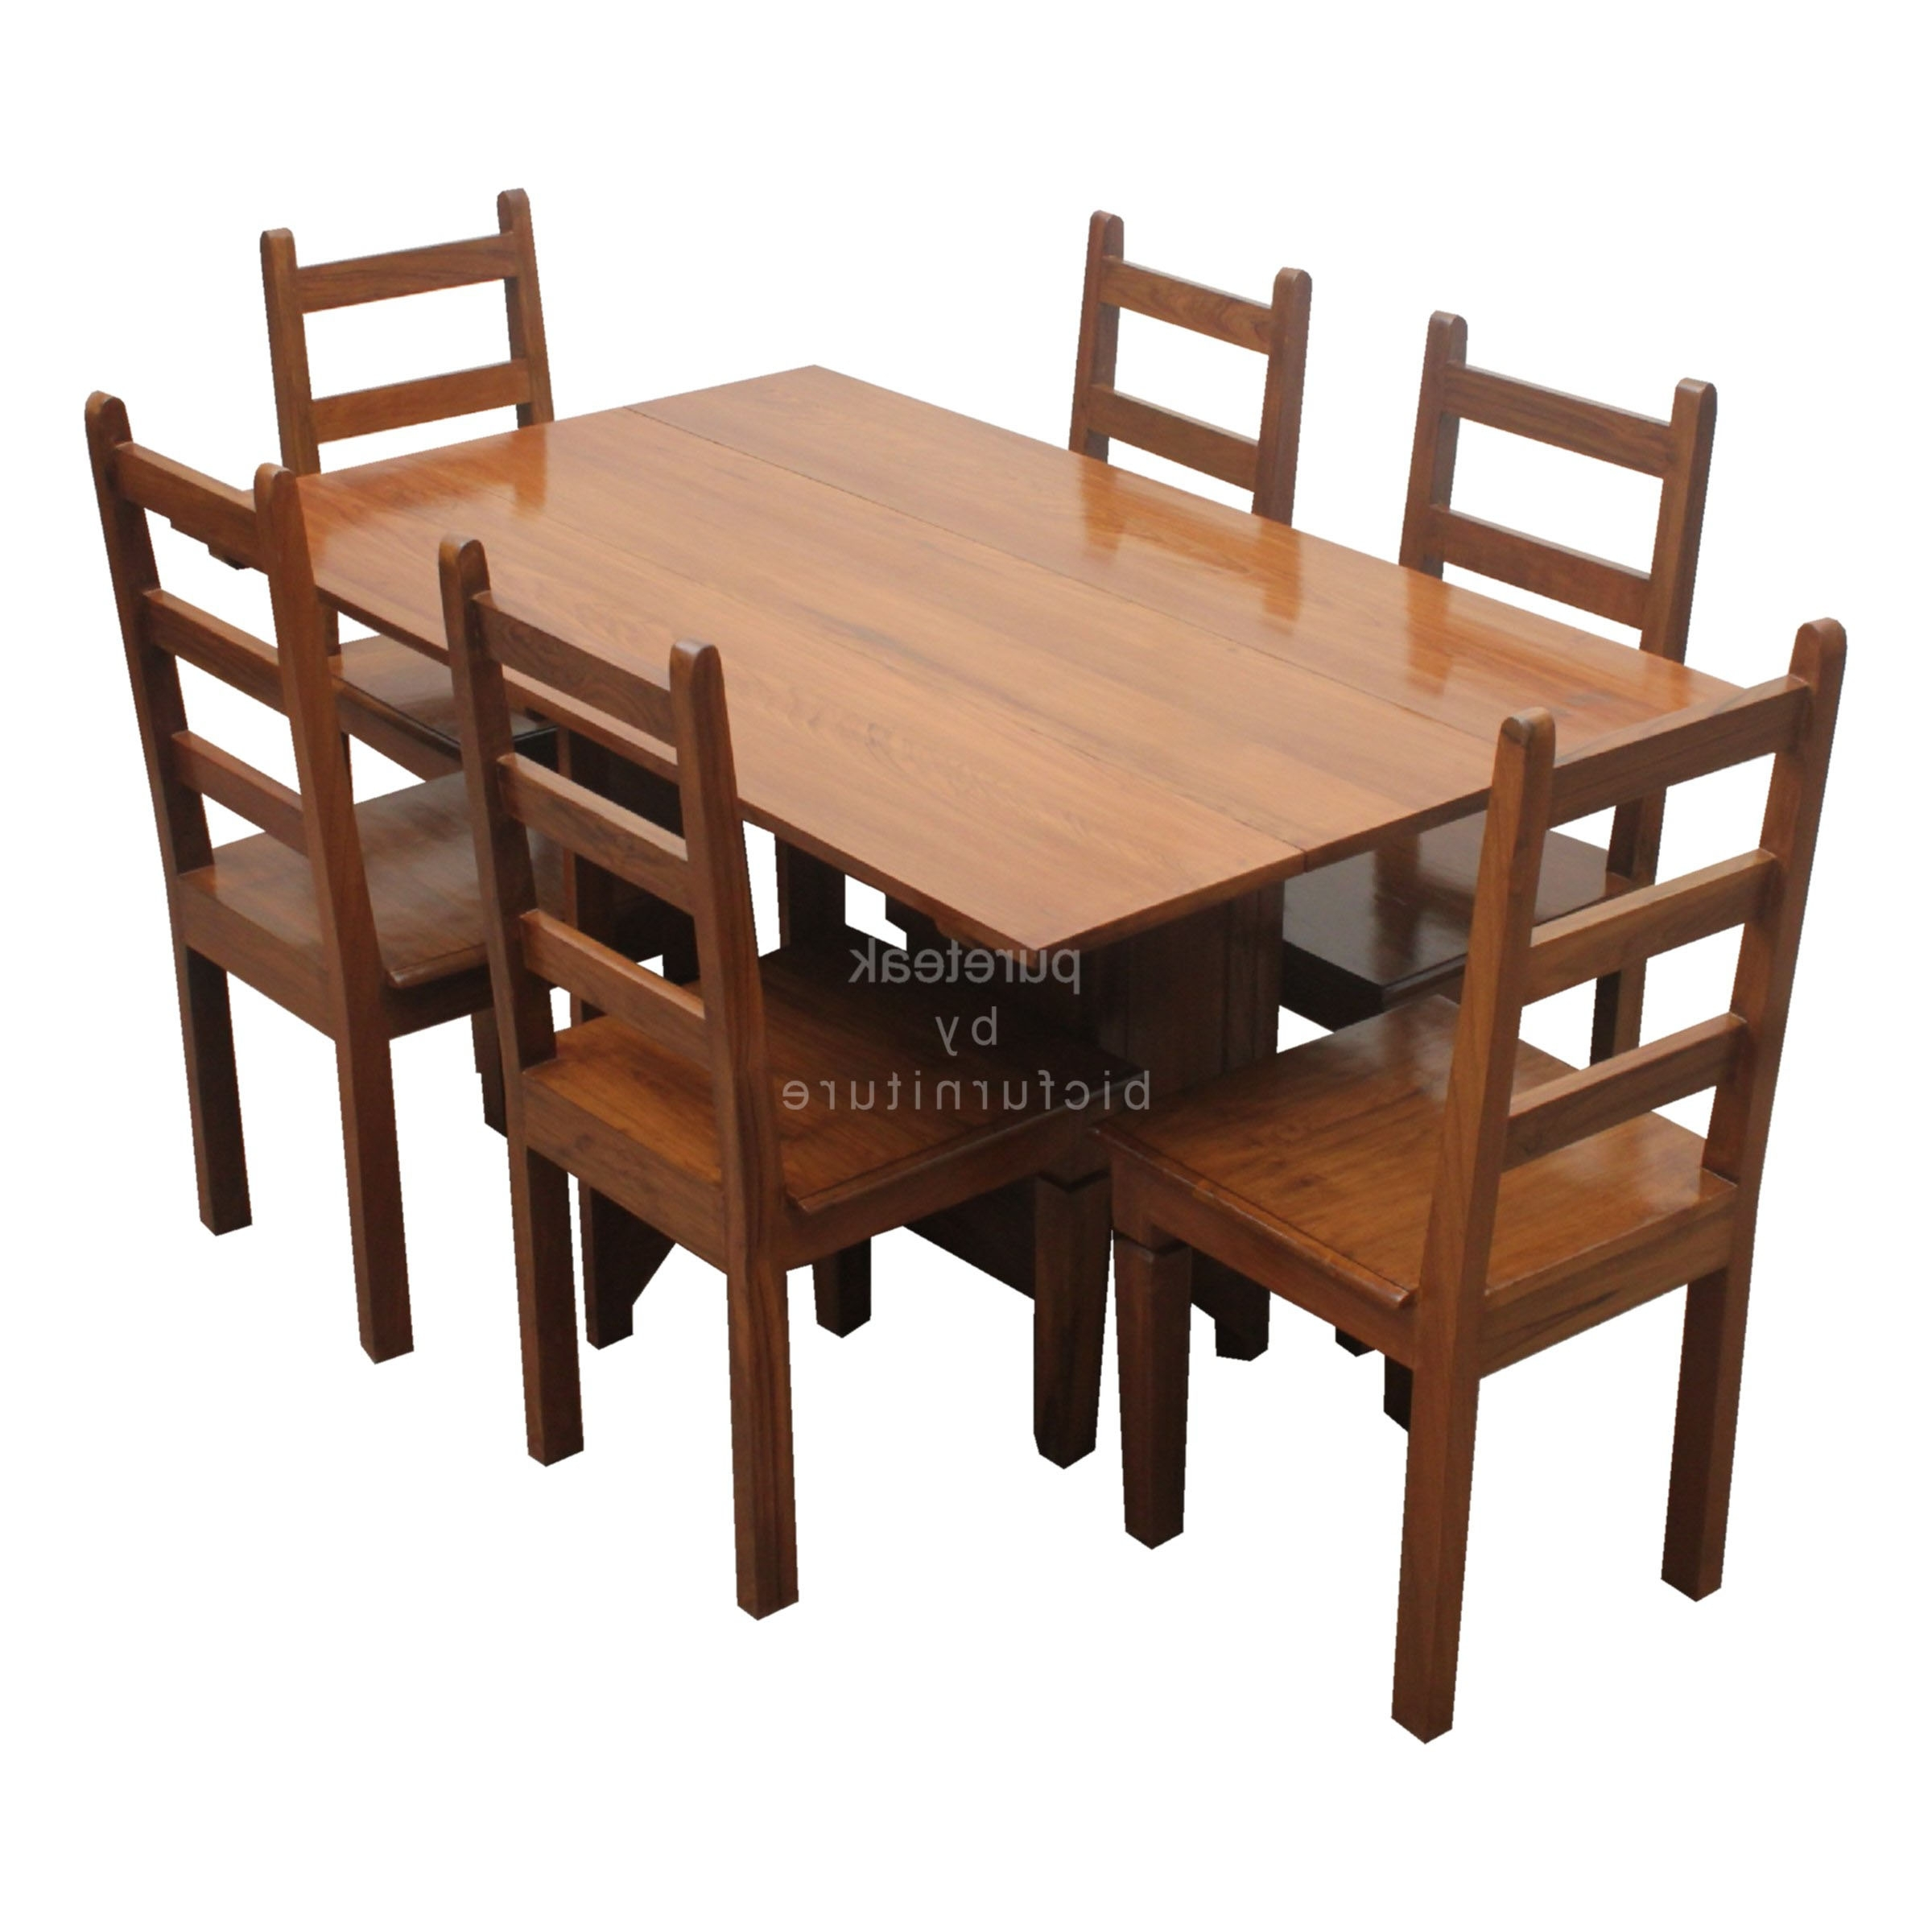 Dining Tables For Six Inside Latest Beautiful 6 Seater Dining Table Sets Made In Solid Wood (View 10 of 25)